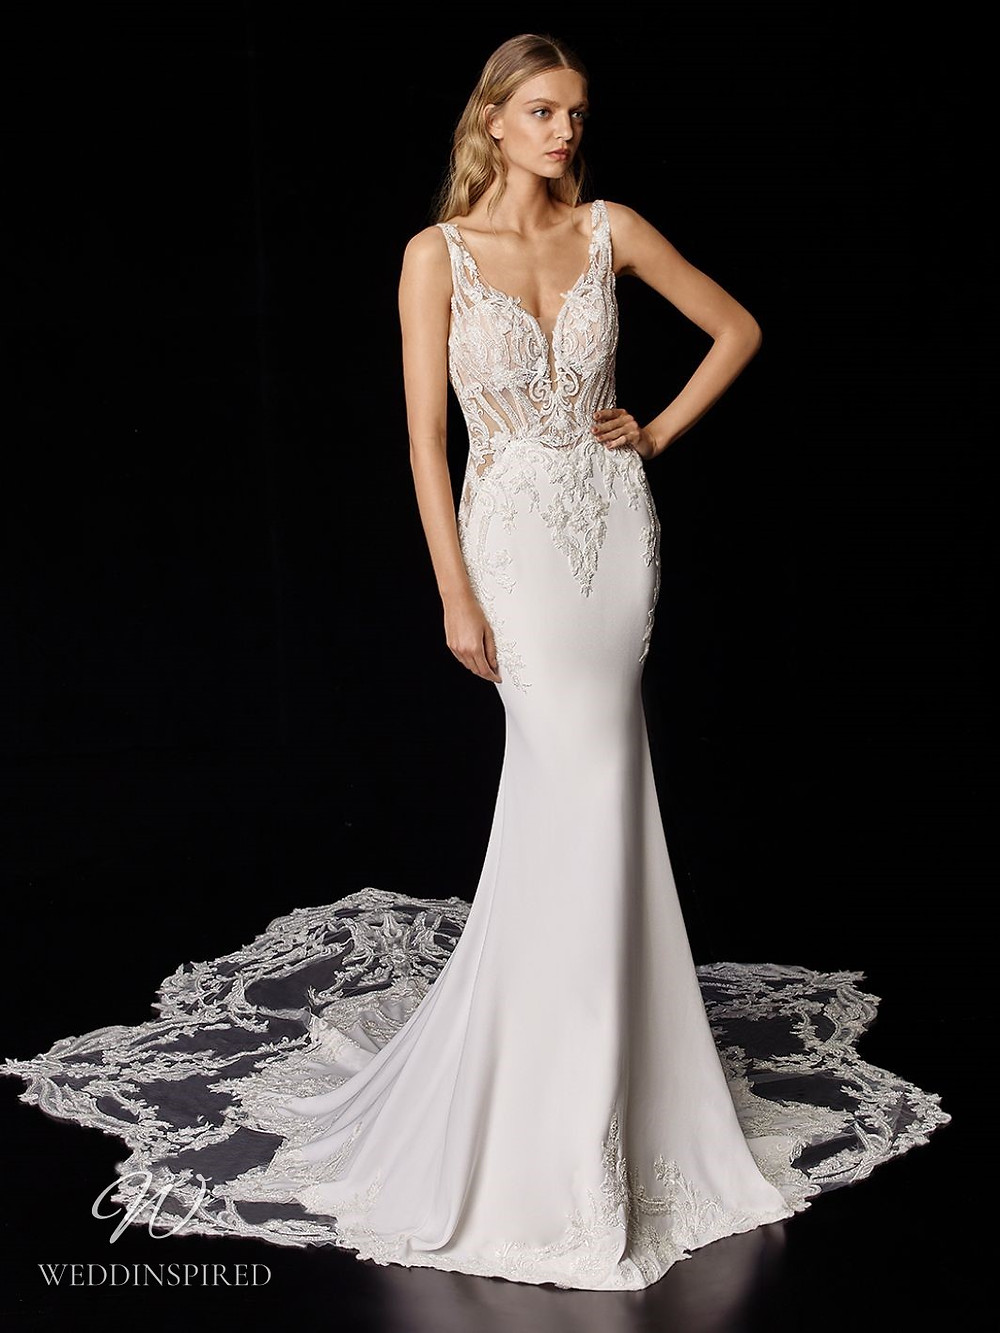 An Enzoani lace and silk mermaid wedding dress with a long lace illusion train